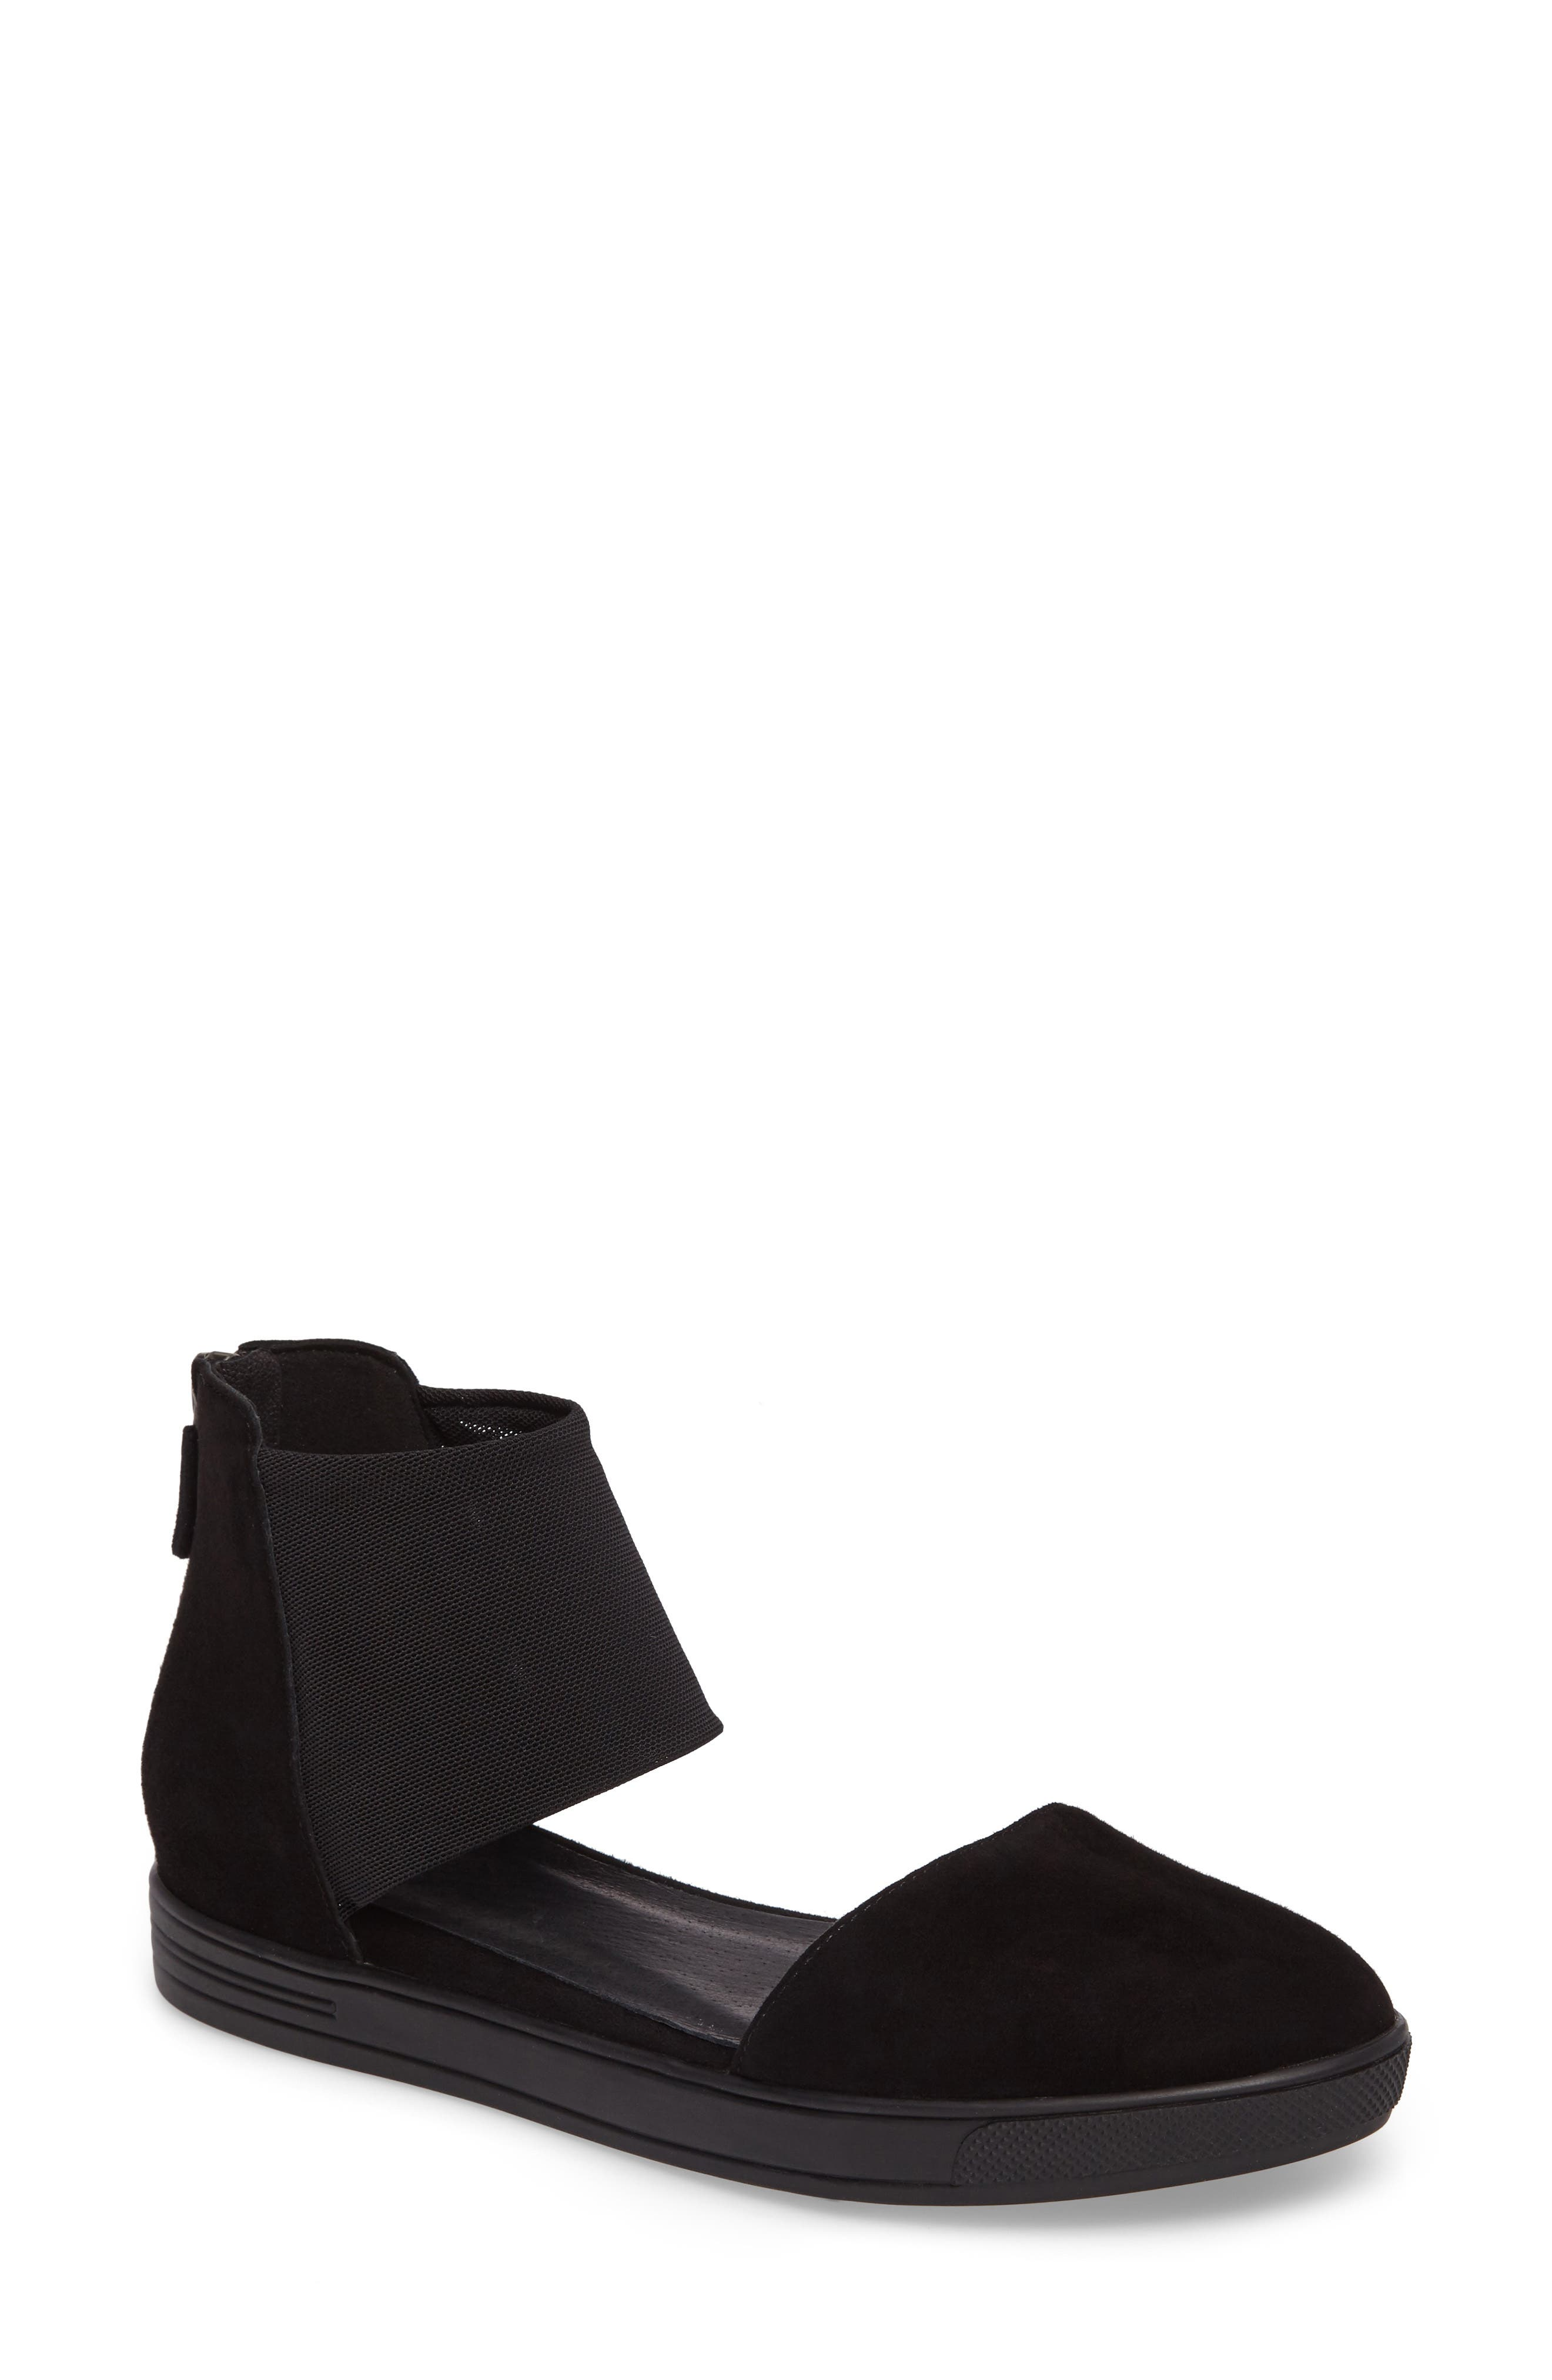 Powell Ankle Cuff Sandal,                         Main,                         color, 001